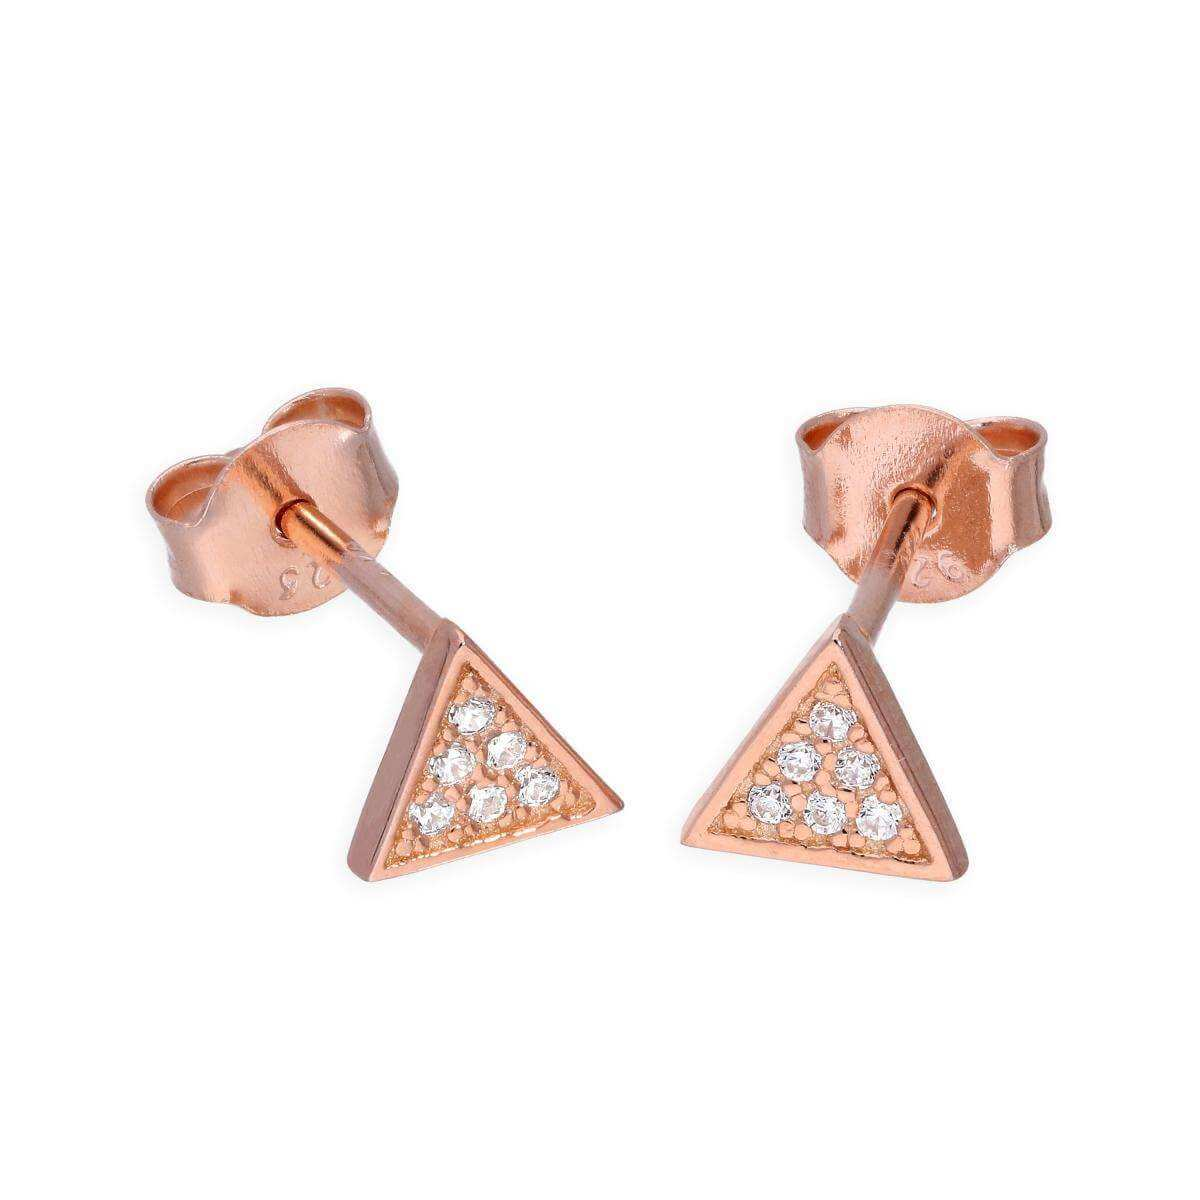 05adeda60 Rose Gold Plated Sterling Silver & Clear CZ Crystal Triangle Stud Earrings